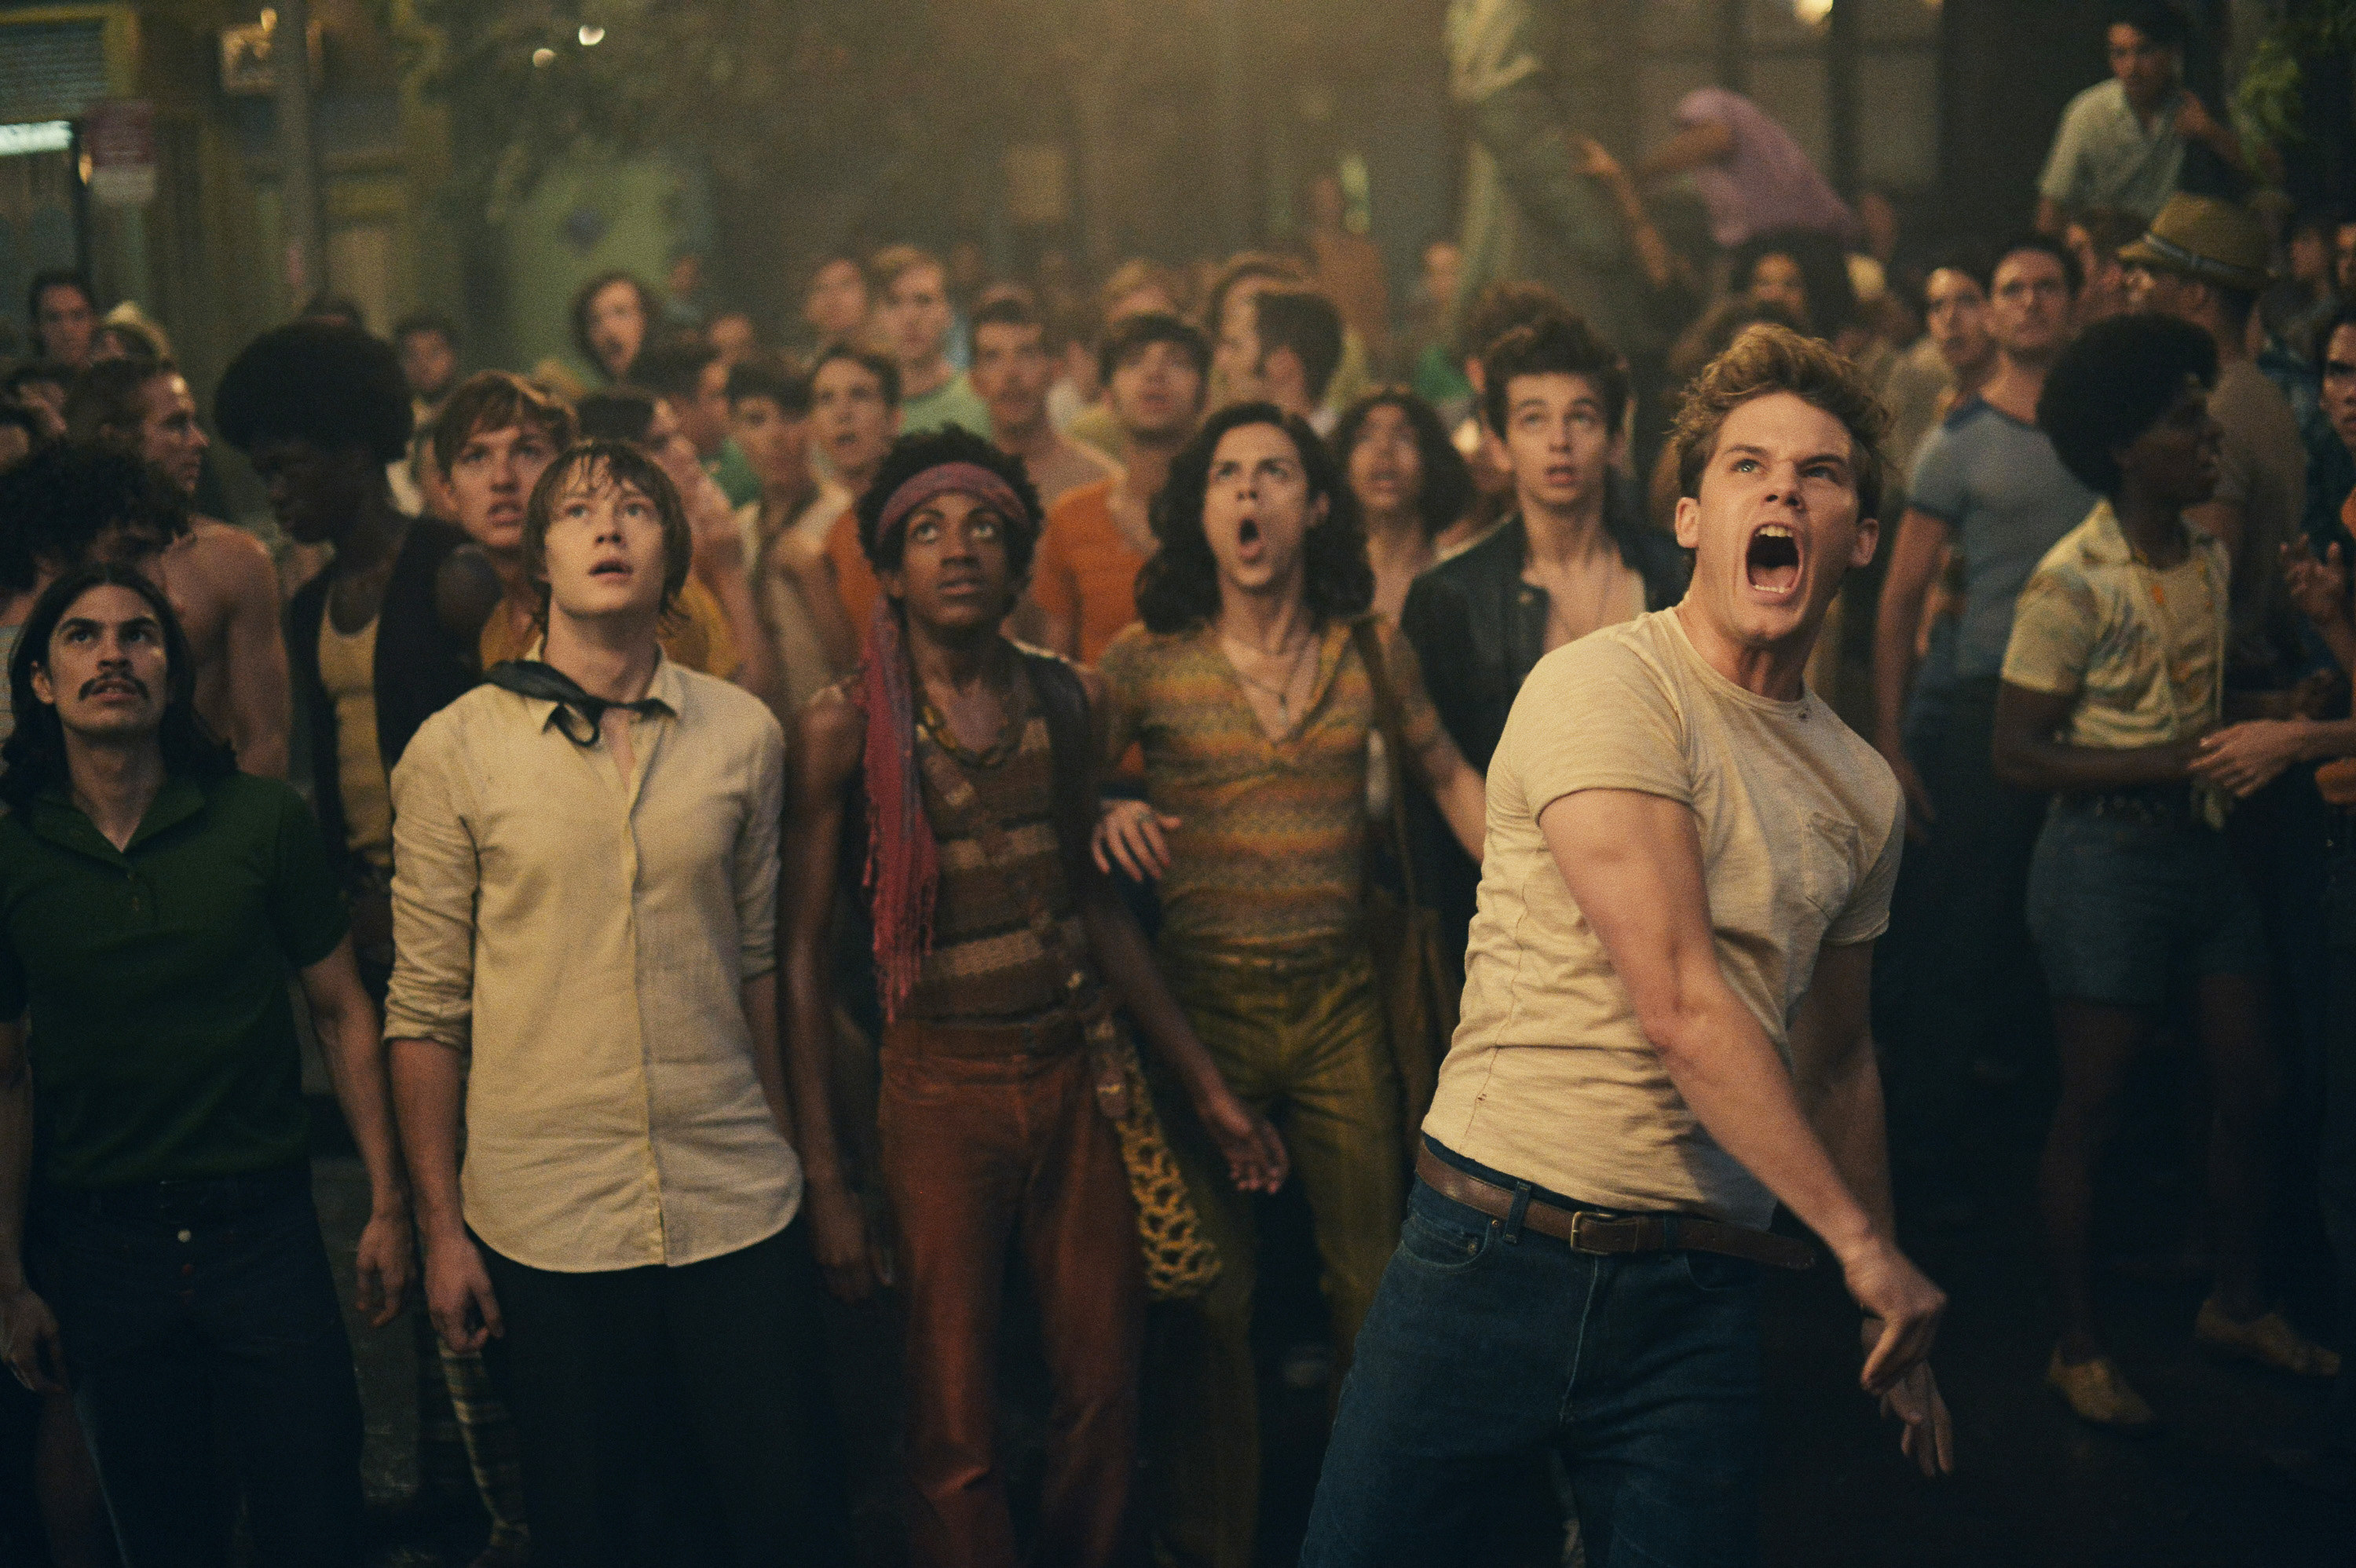 A man yells toward the camera in a scene from Stonewall